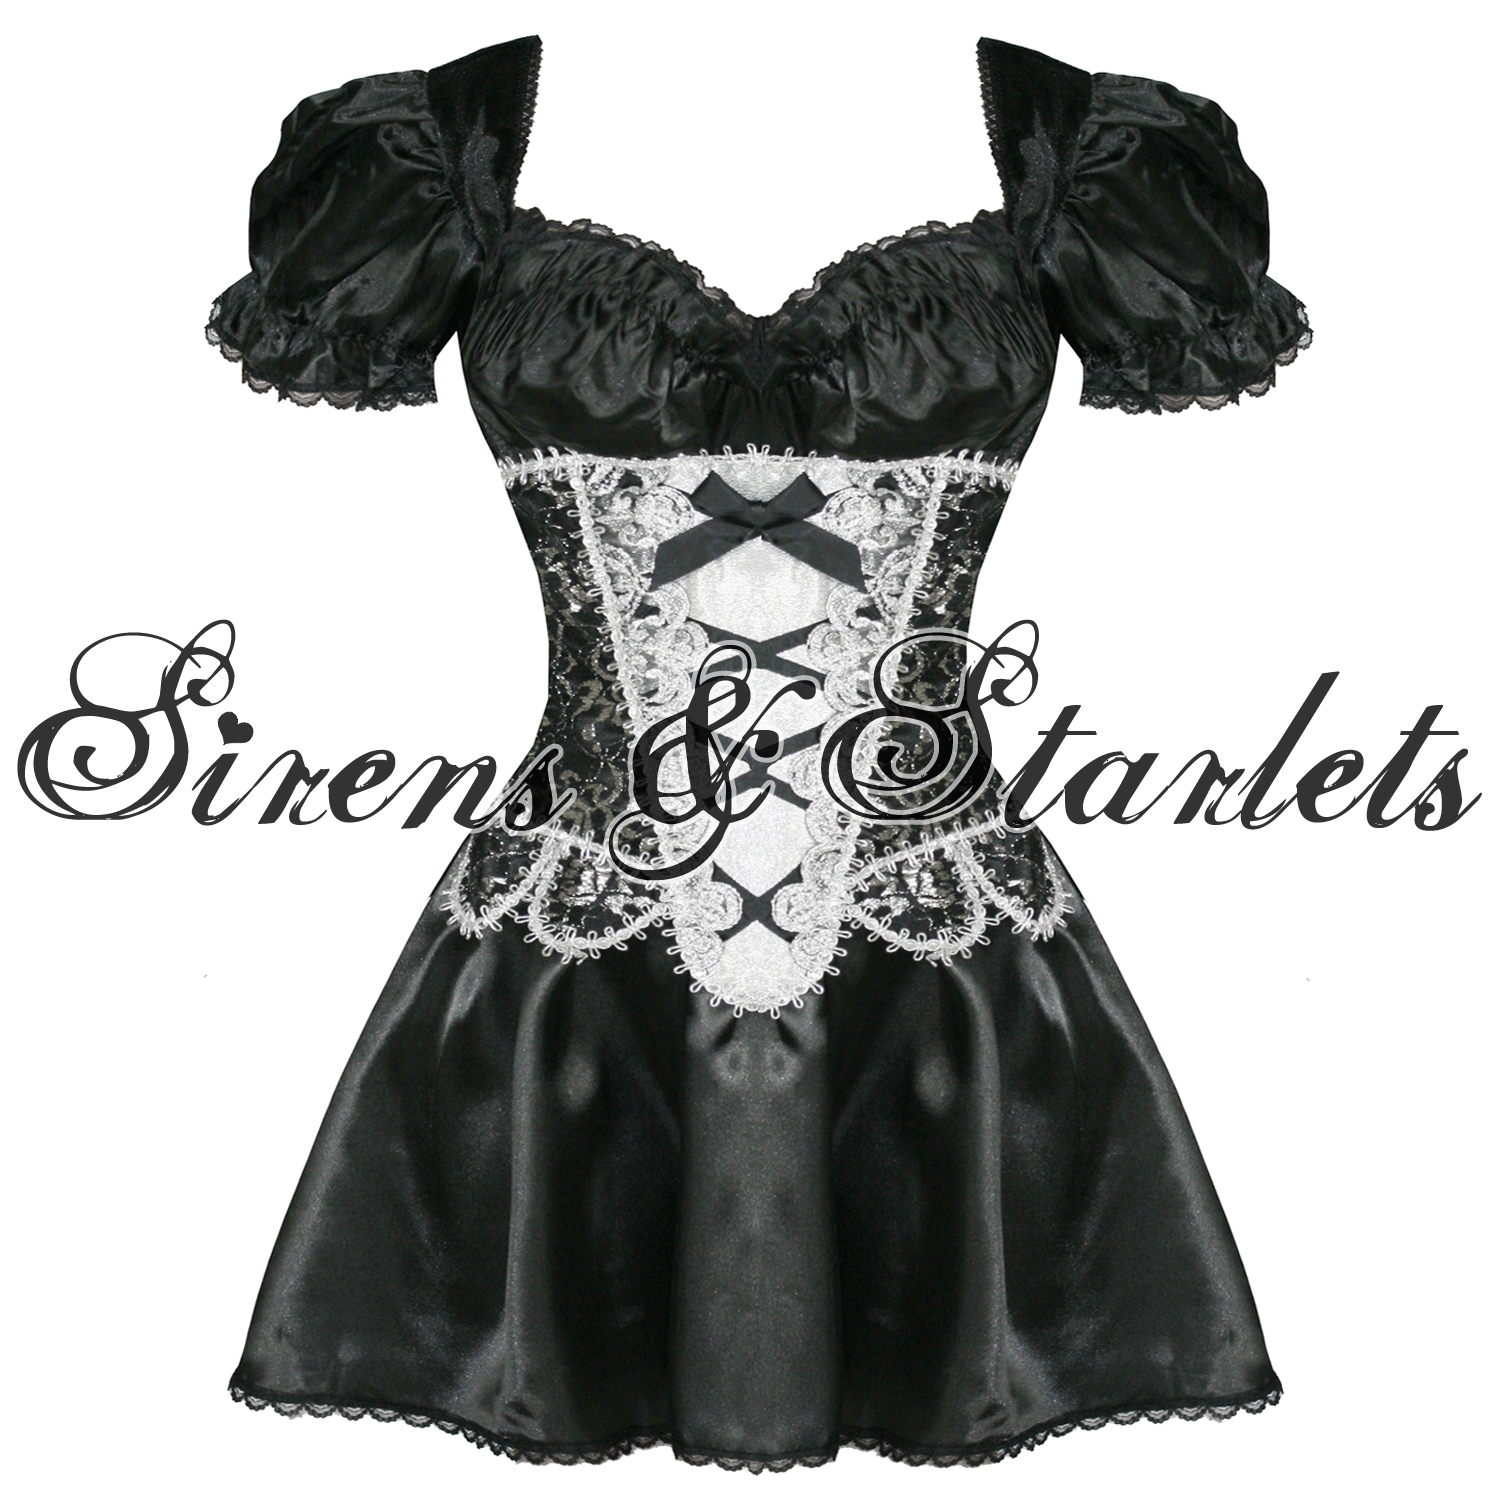 SEXY-BLACK-WITCH-FANCY-DRESS-GOTHIC-CORSET-COSTUME-OUTFIT-PLUS-SIZE